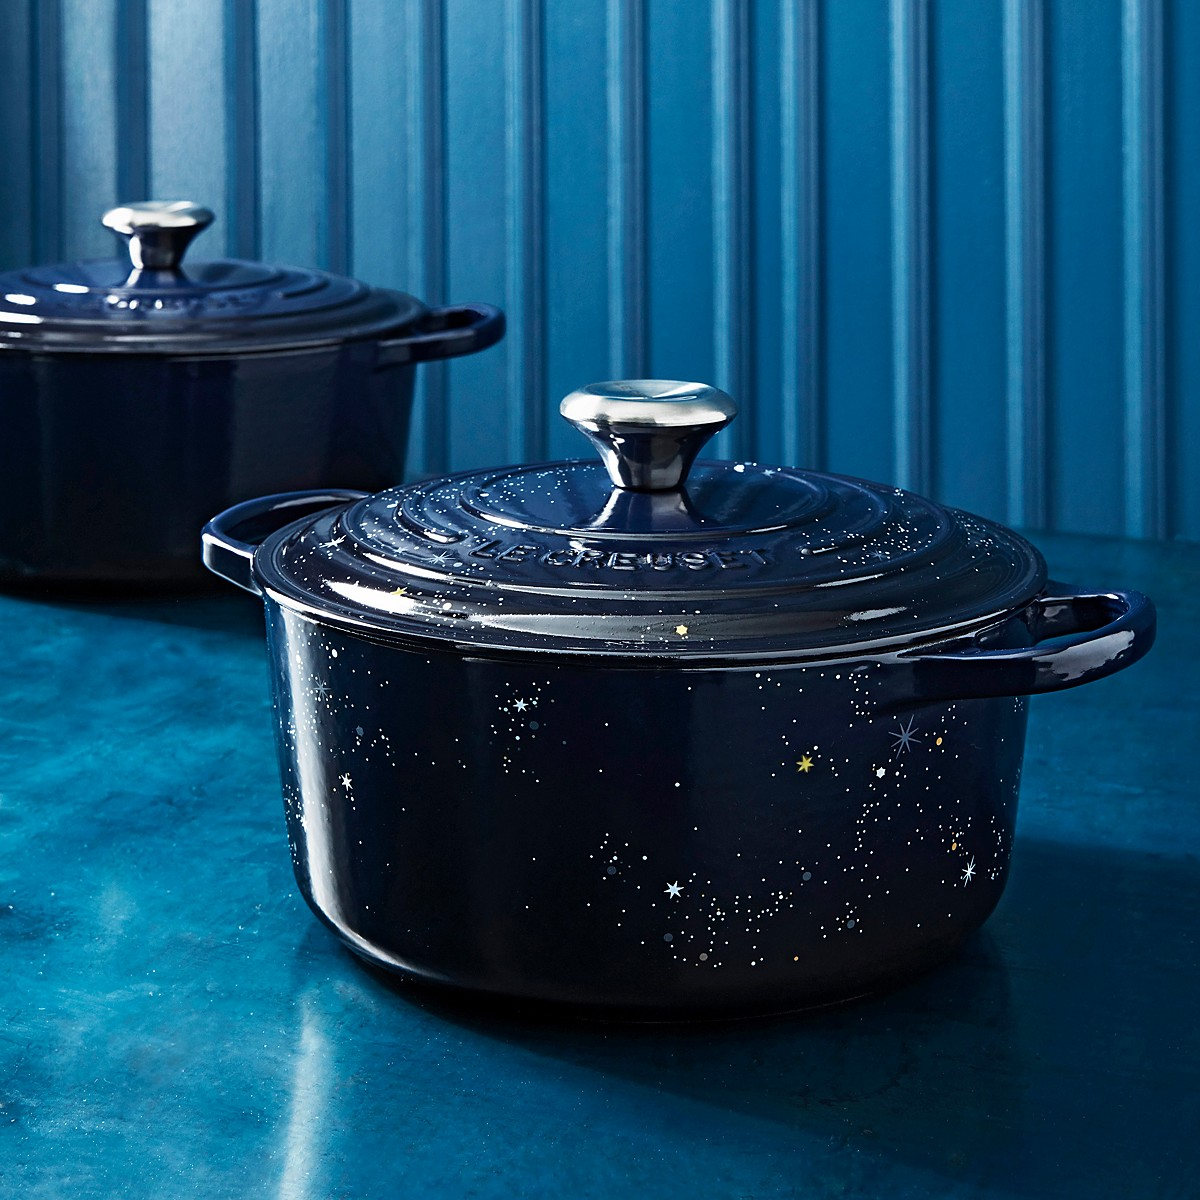 Le Creuset's Newest Dutch Oven Is Out of This World